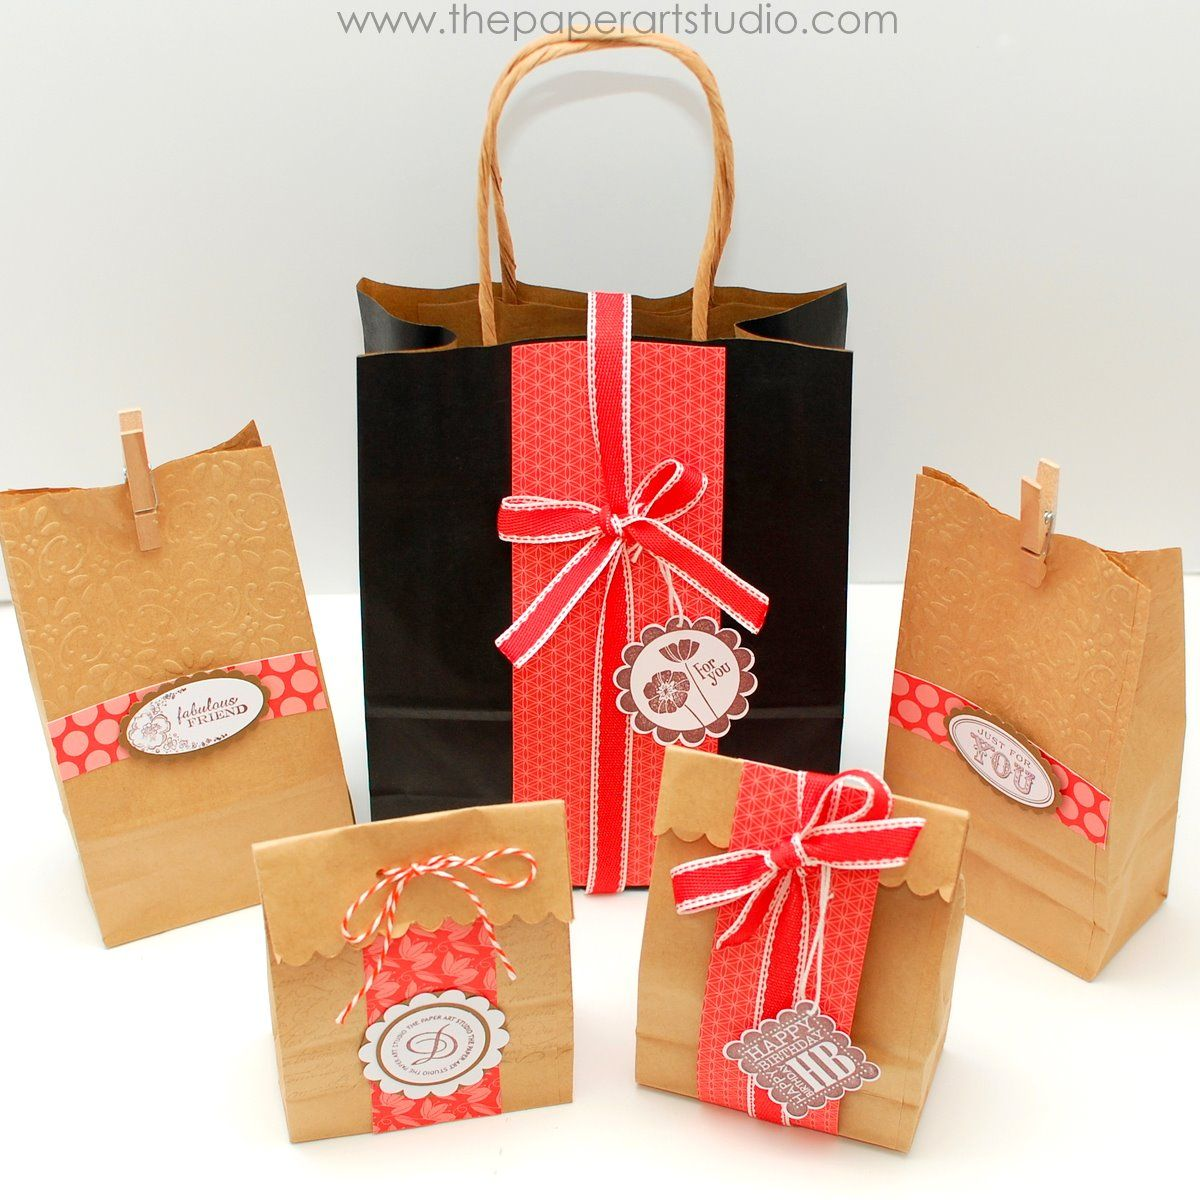 Ways to decorate gift bags - There Are So Many Ways You Can